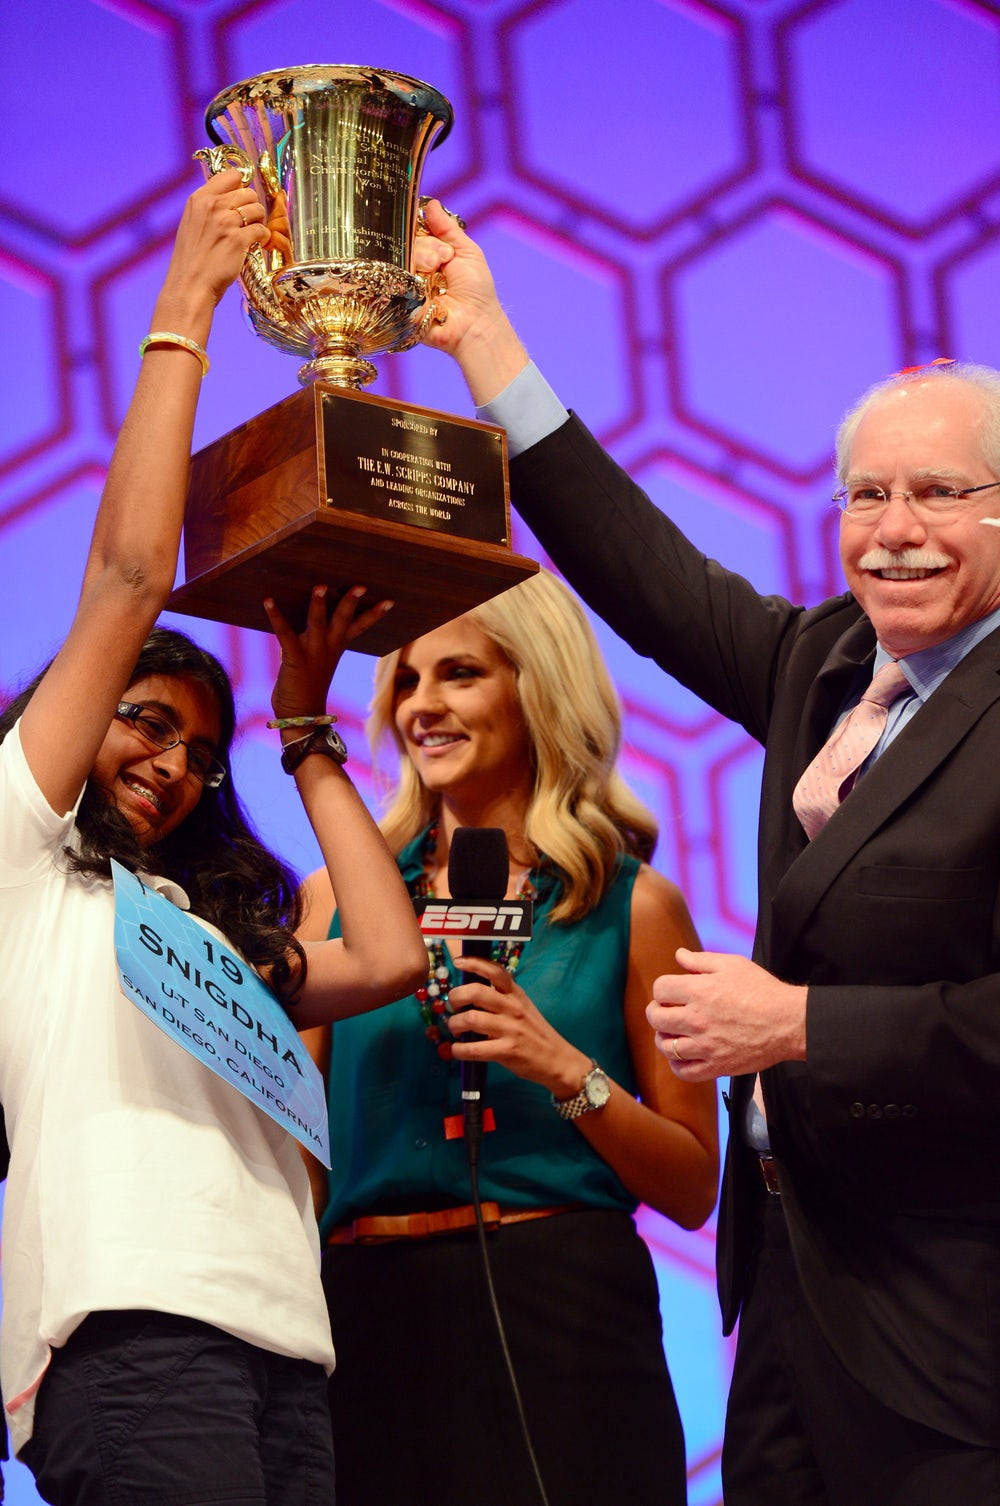 2012 Scripps National Spelling bee winner Snigdha Nandipati raises her trophy with Rich Boehne, President and CEO of The E.W. Scripps Company.